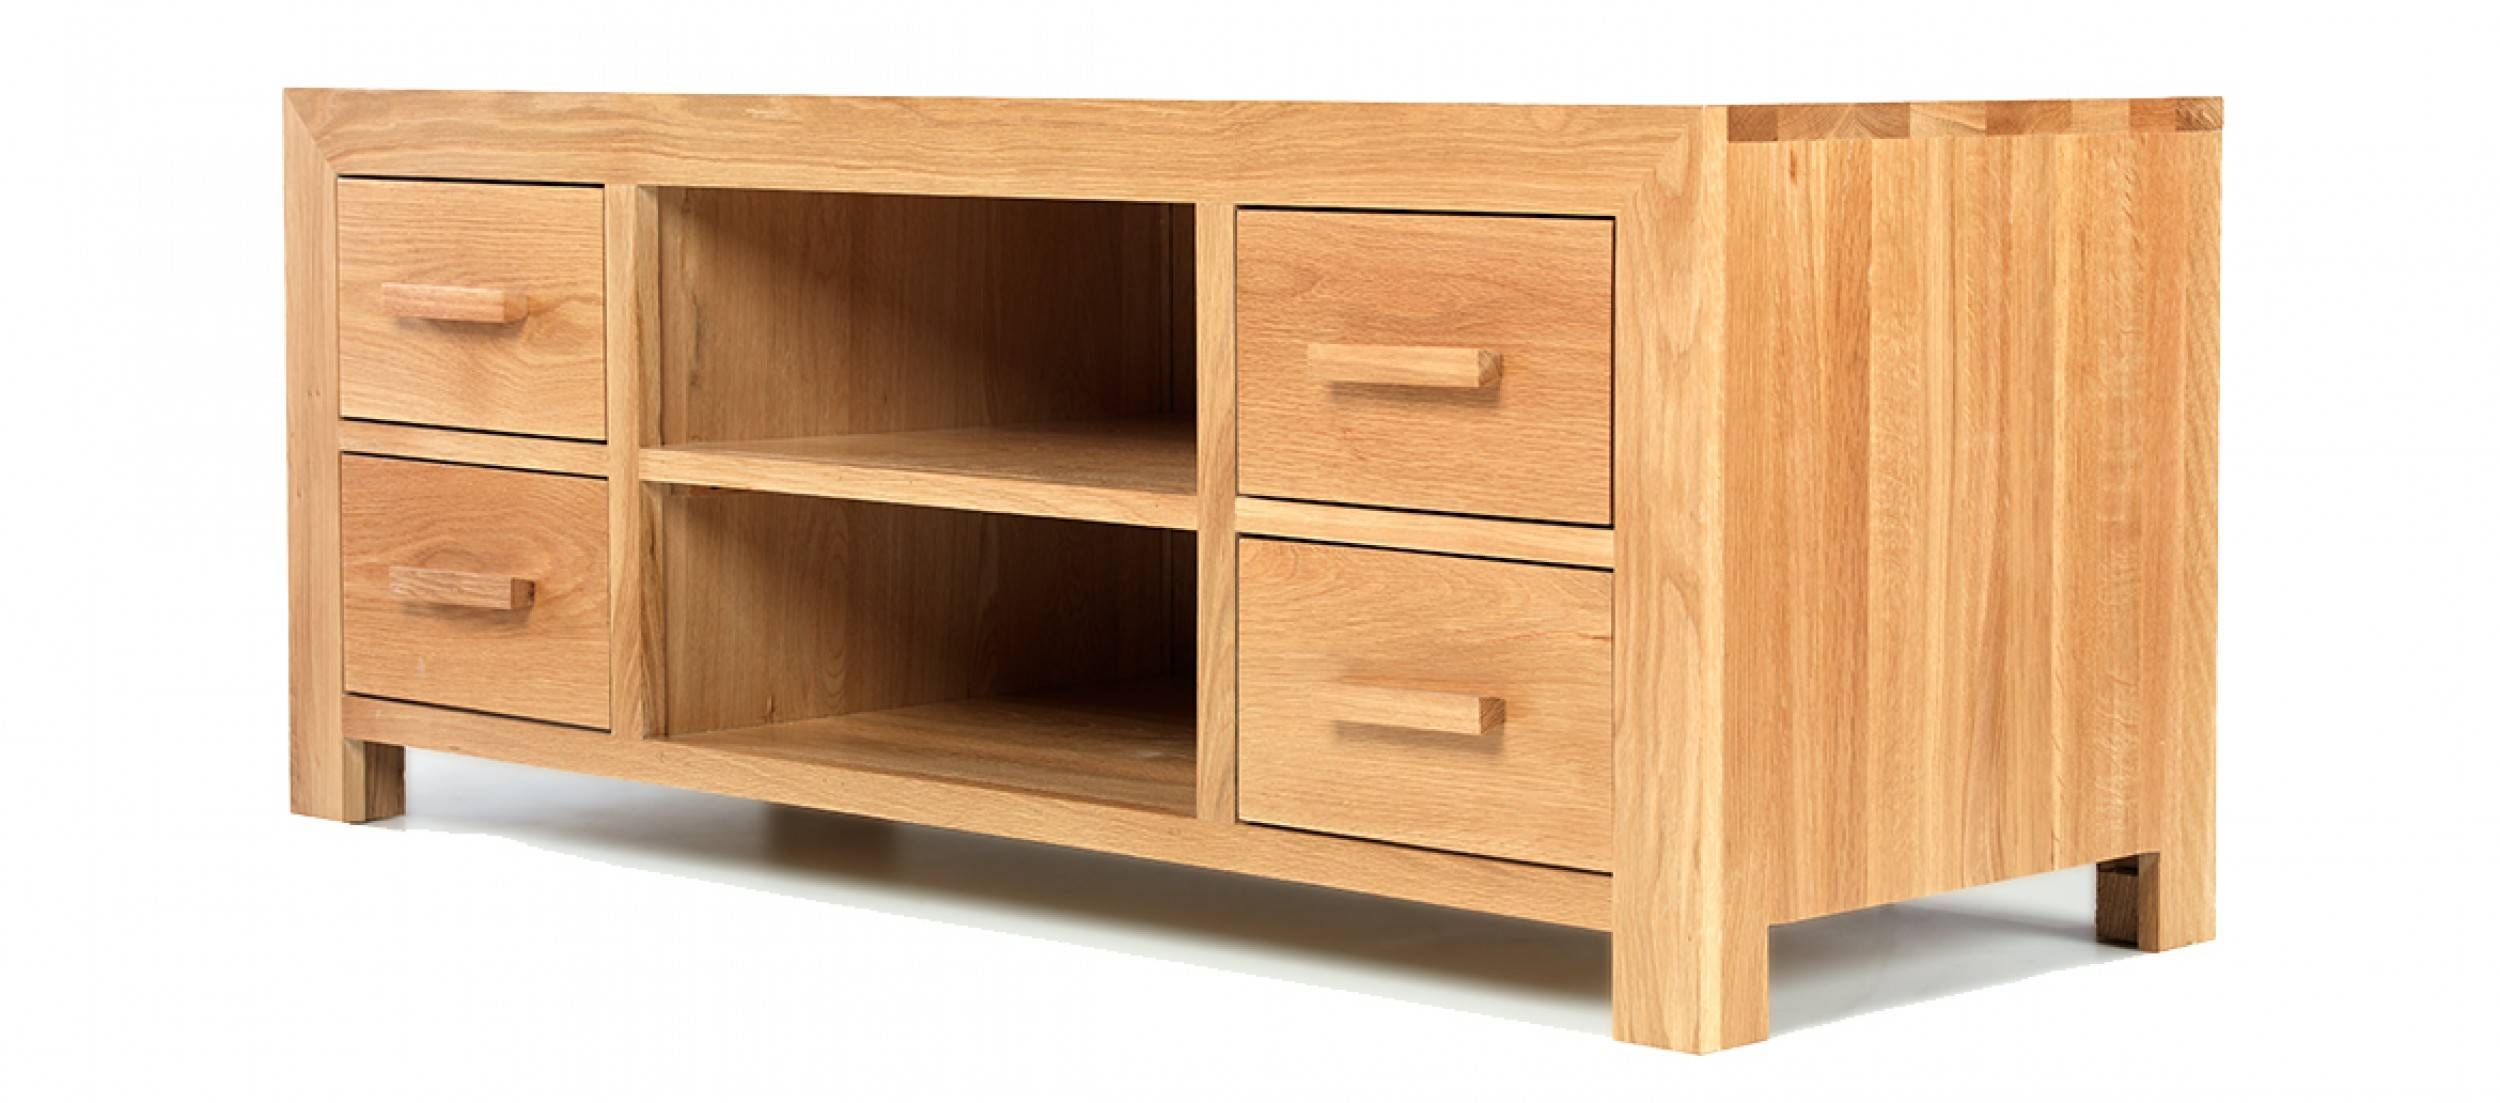 Cube Oak Plasma Tv Stand | Quercus Living intended for Plasma Tv Stands (Image 2 of 15)